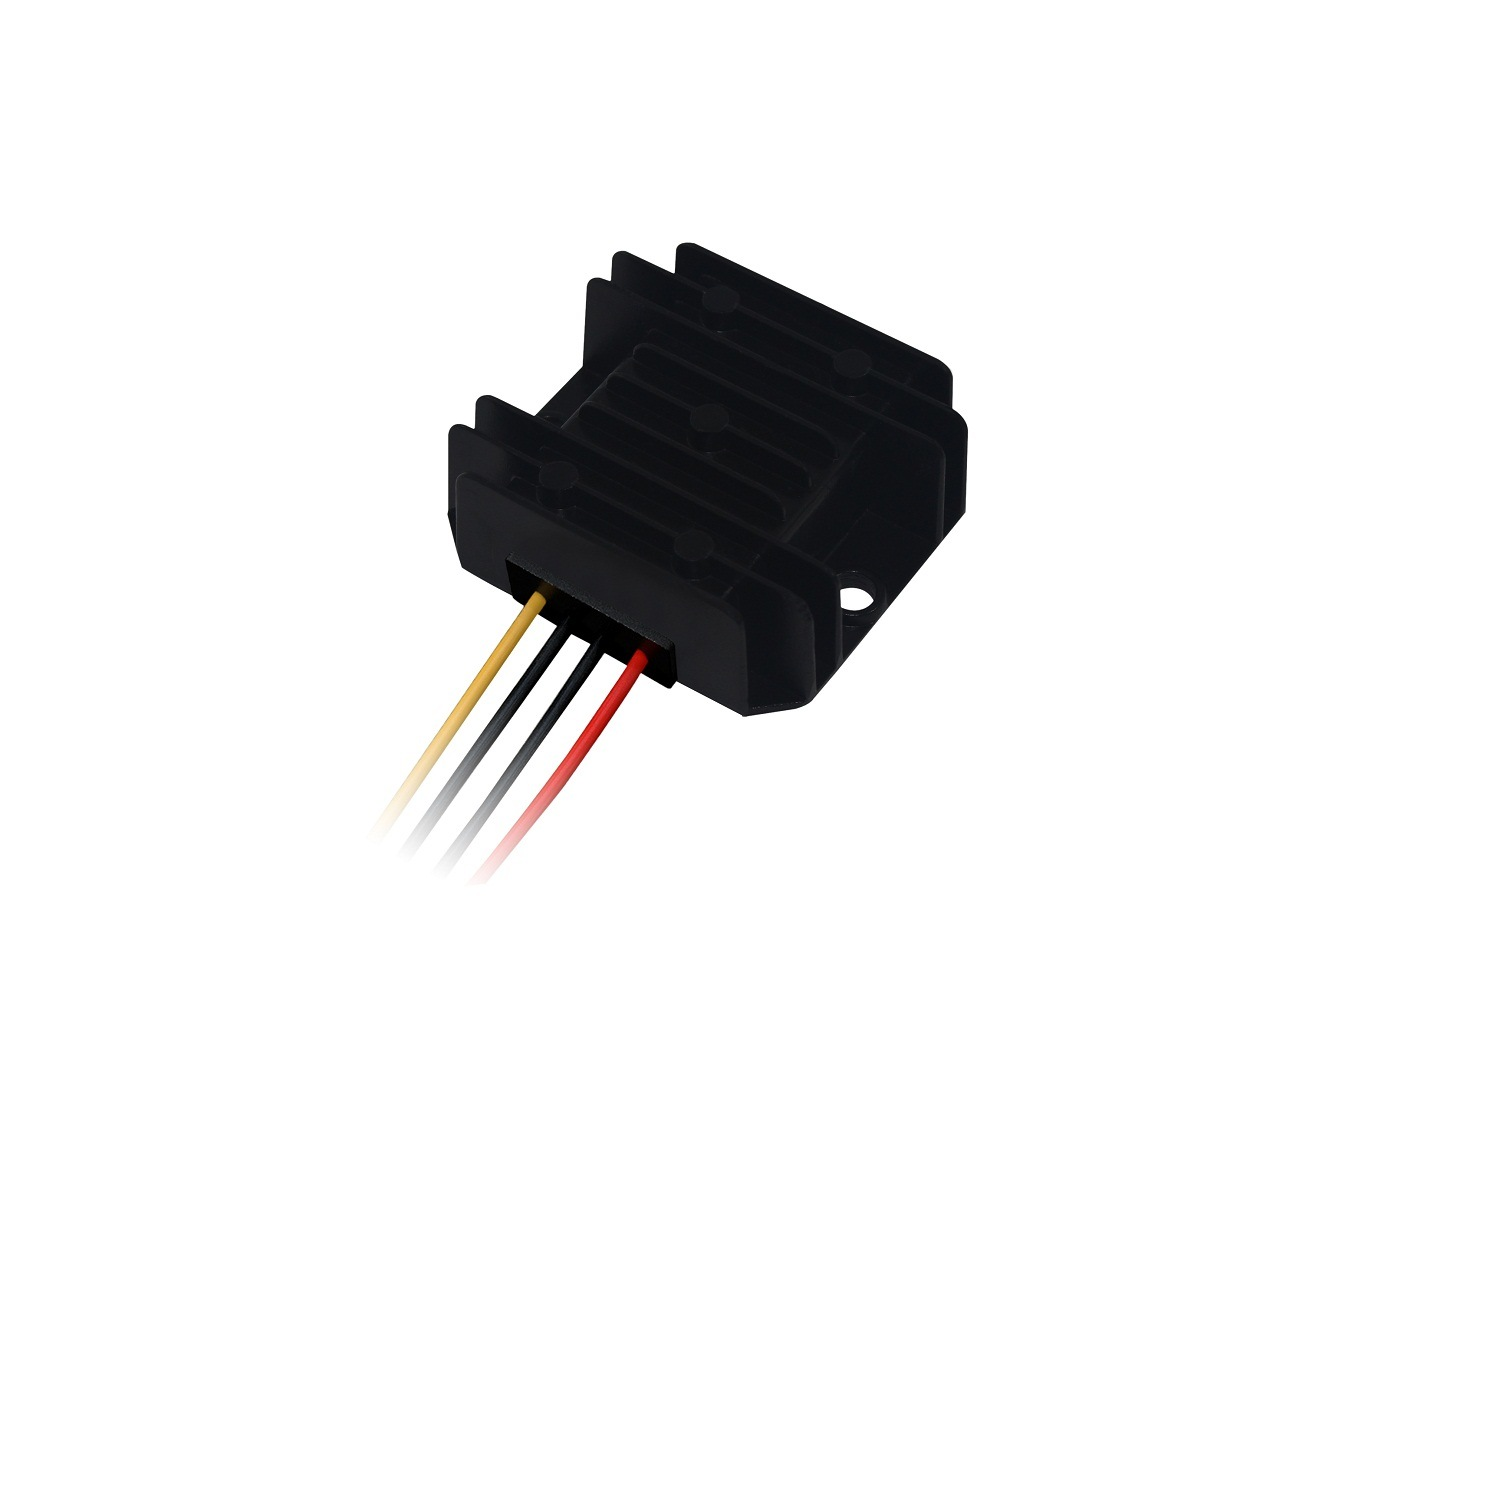 Waterproof DC-DC 12V to 48V 3A 144W Boost Power Converter